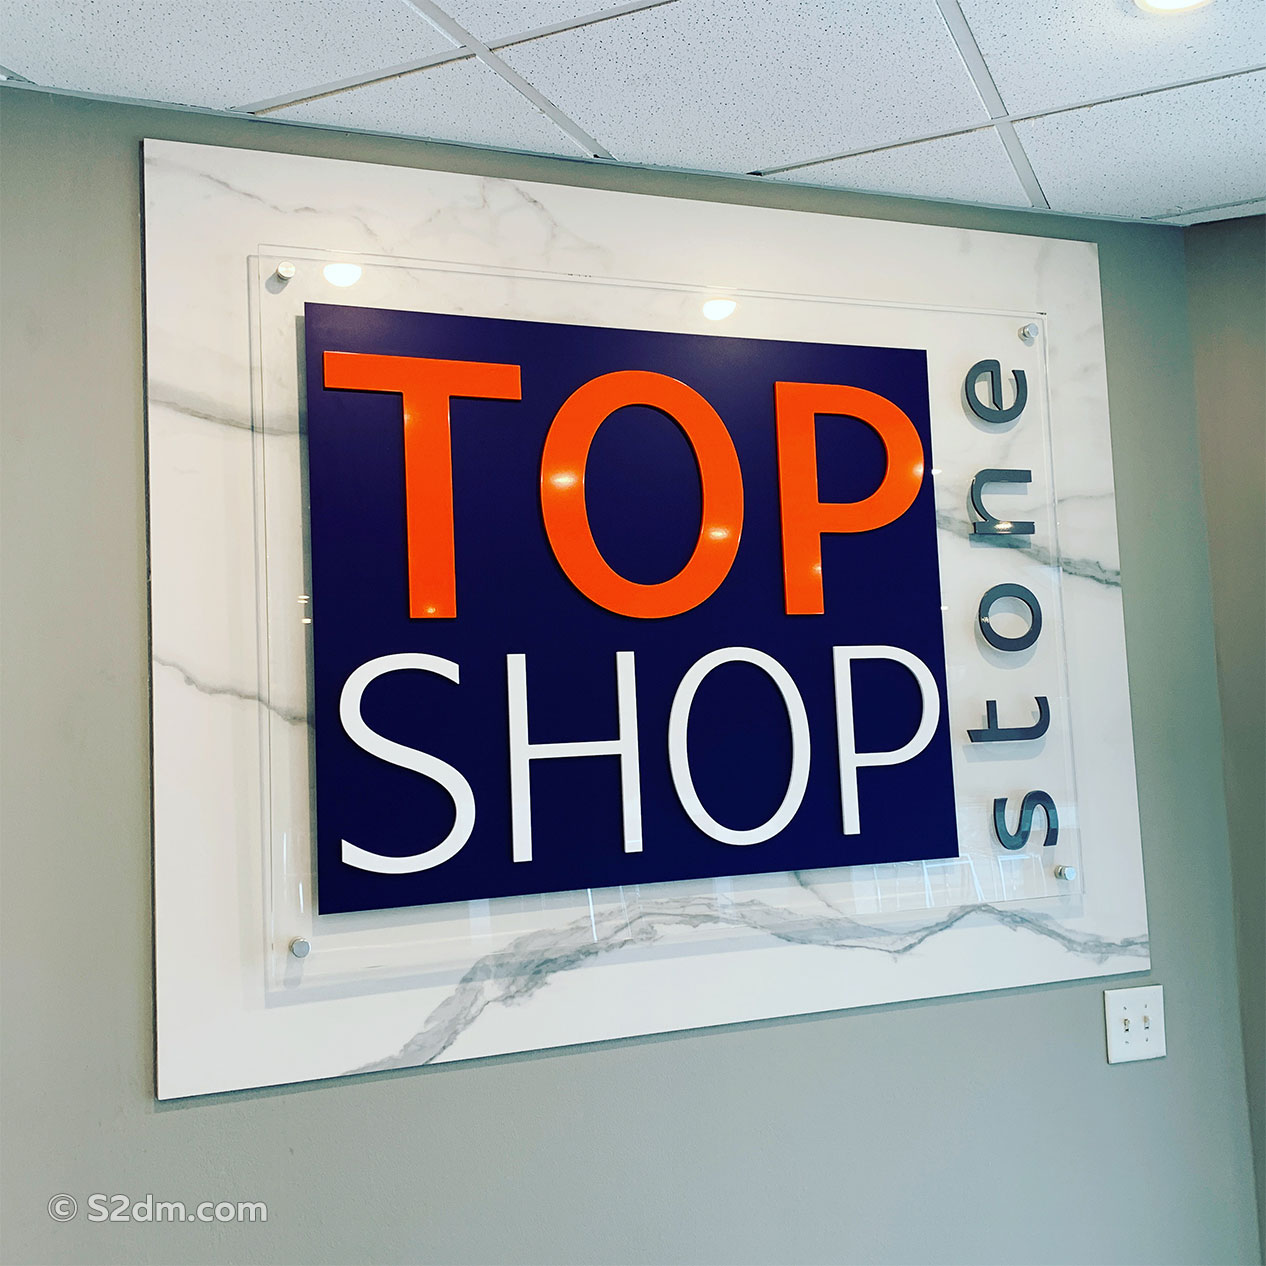 Top Shop Stone signs